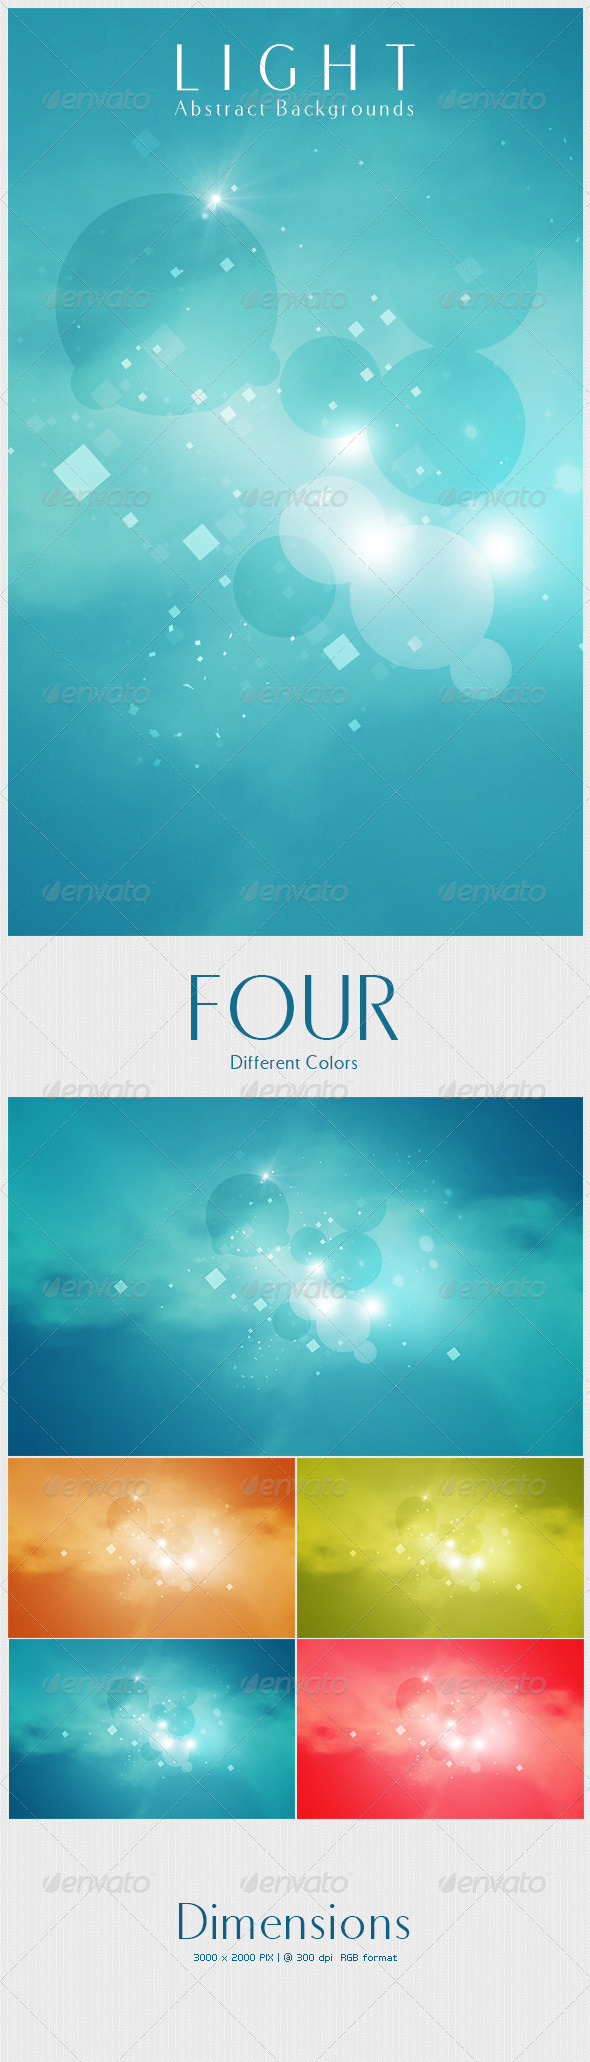 GraphicRiver Light Abstract Backgrounds 4456683